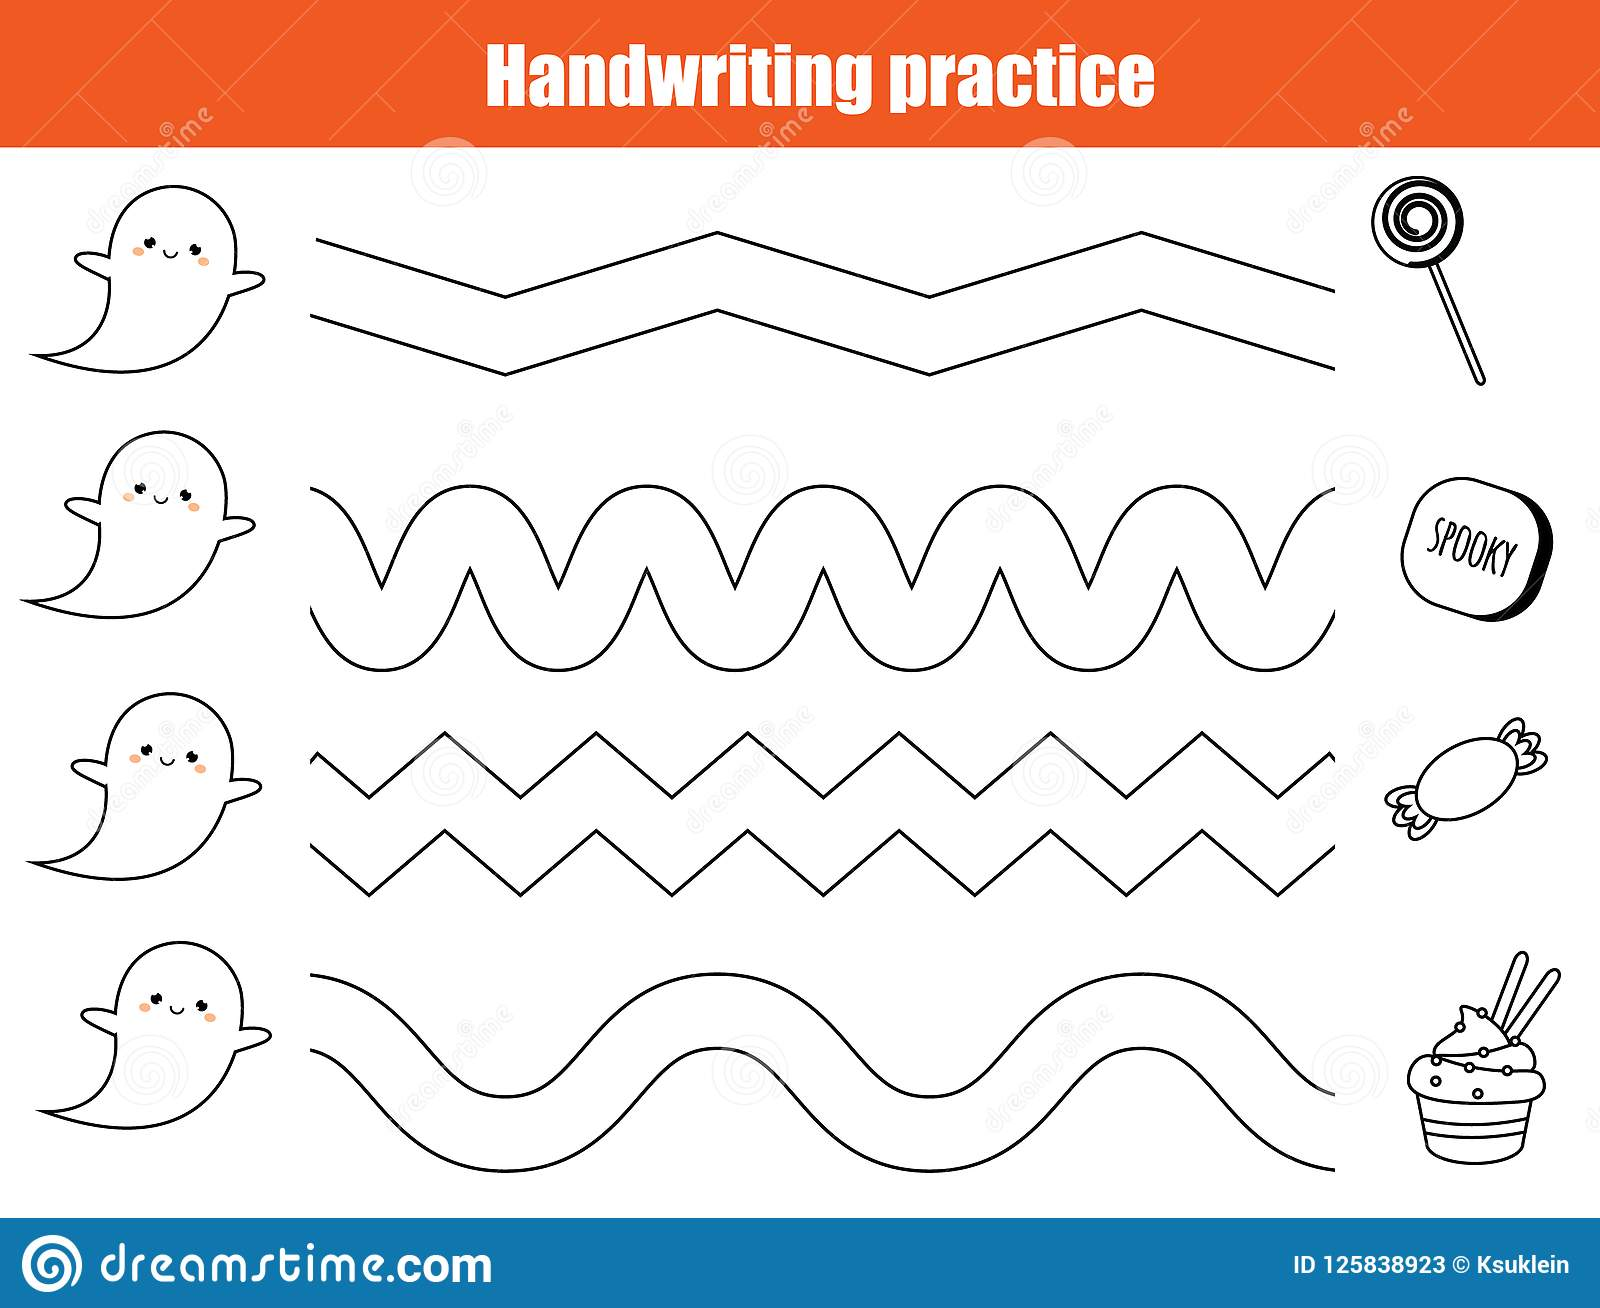 Halloween Handwriting Practice Sheet Educational Children